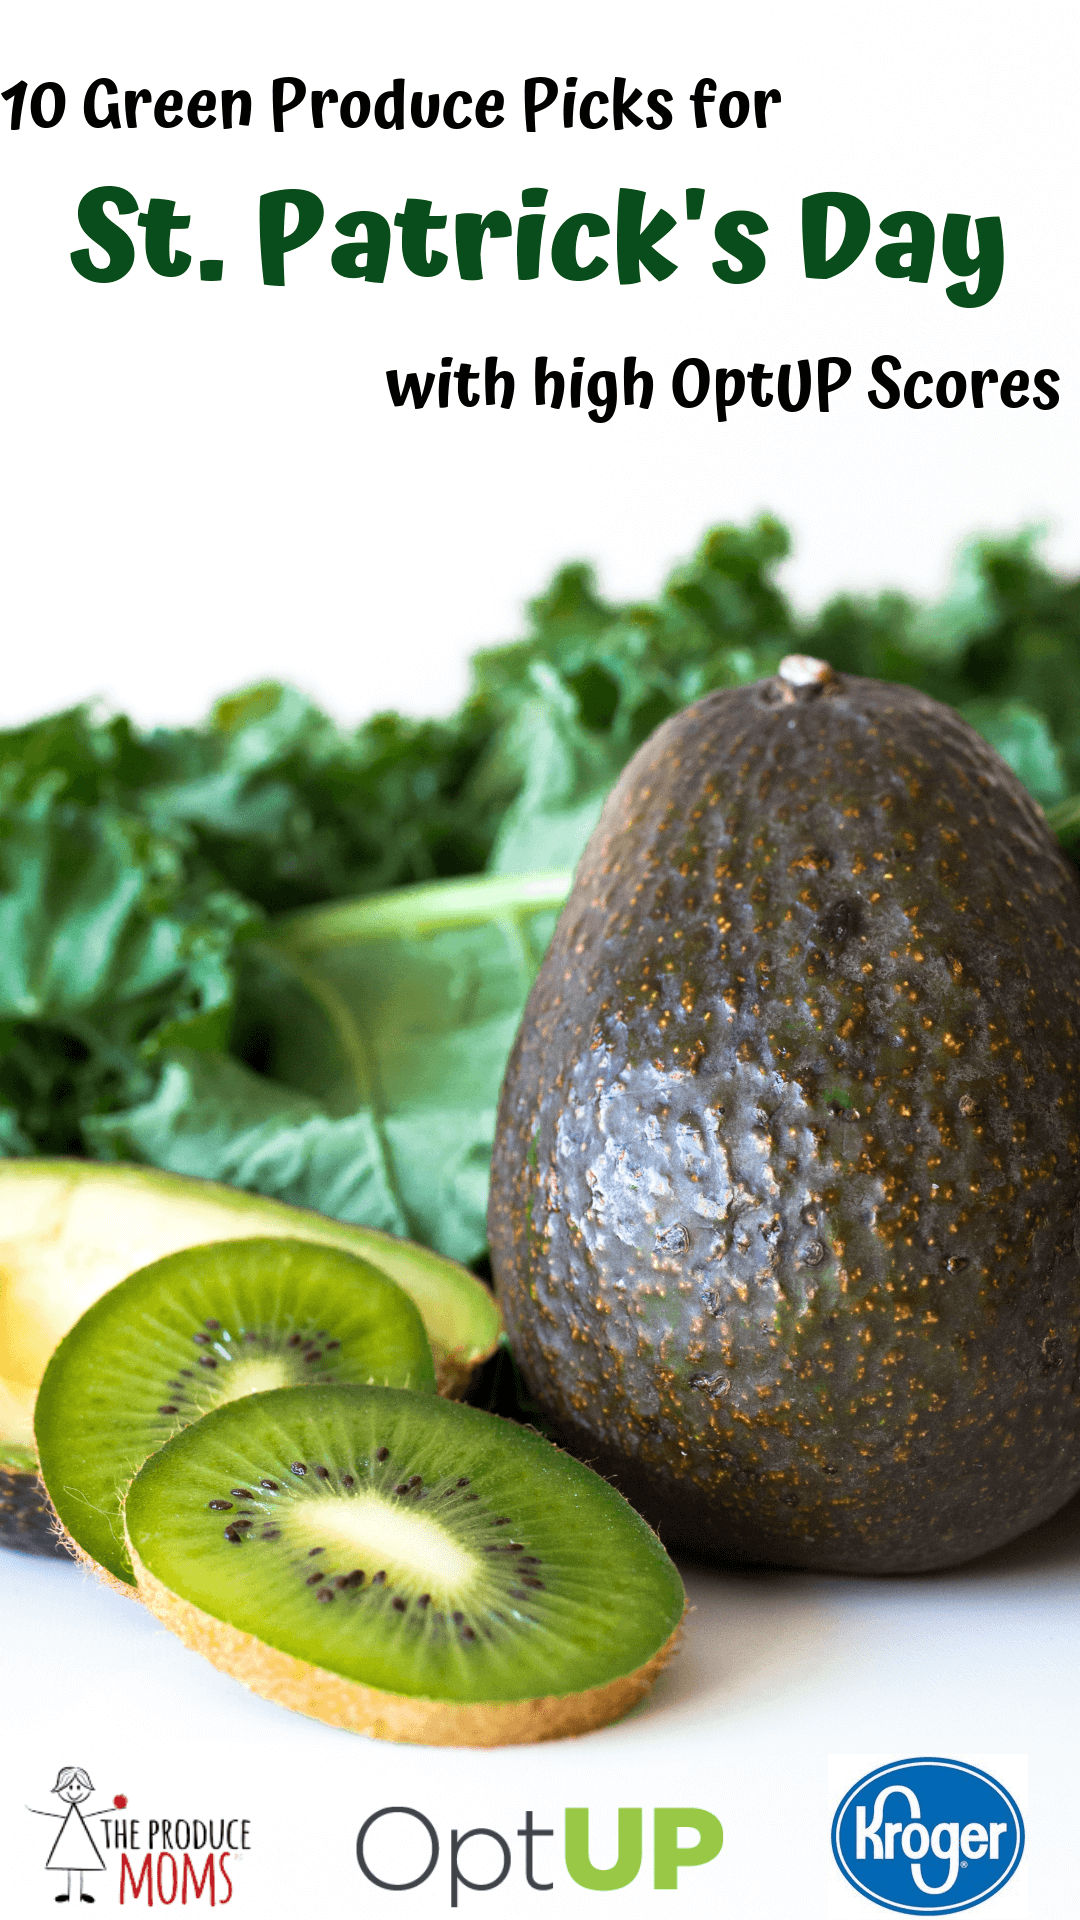 10 St. Patrick's Day Green Produce Picks with Great Scores on Kroger's OptUP App